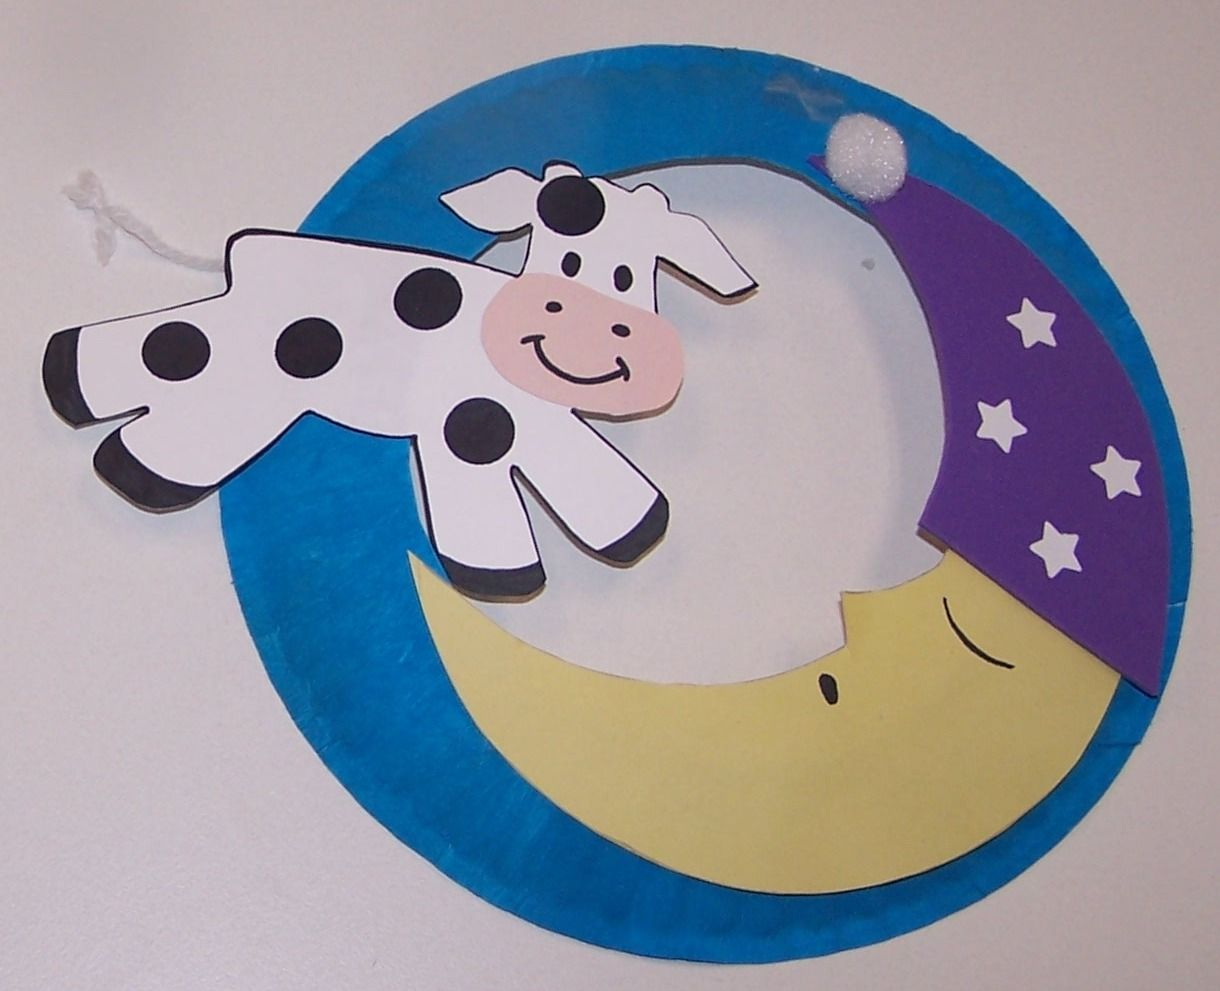 cow jumped over the moon craft - Google Search | Kids Crafts ...